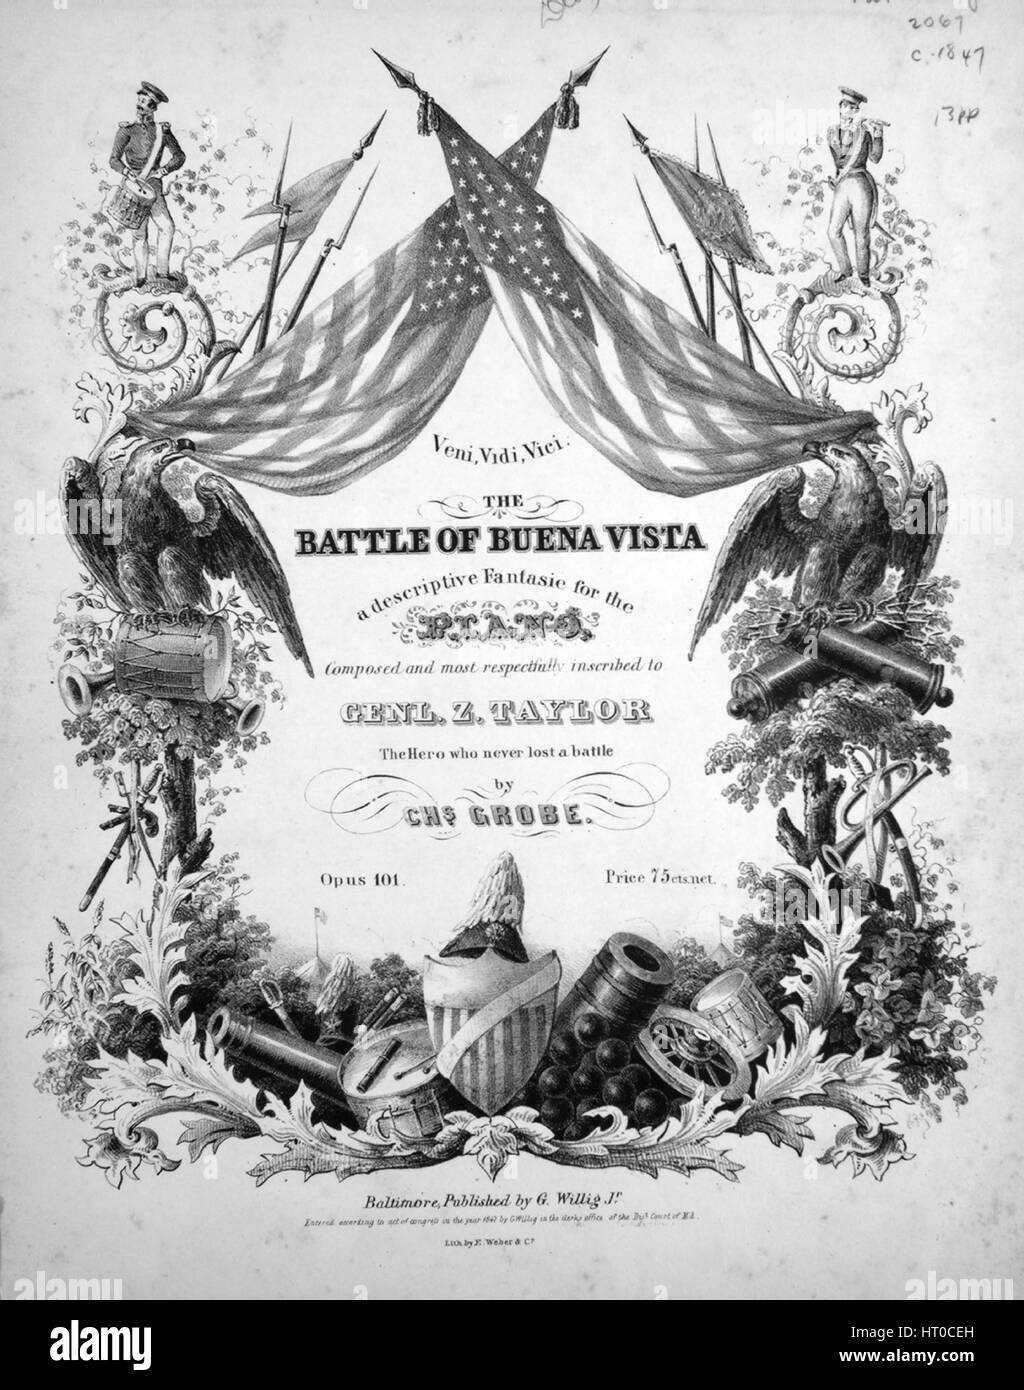 Sheet music cover image of the song 'Veni, Vidi, Vici The Battle of Buena Vista A Descriptive Fantasie for the - Stock Image